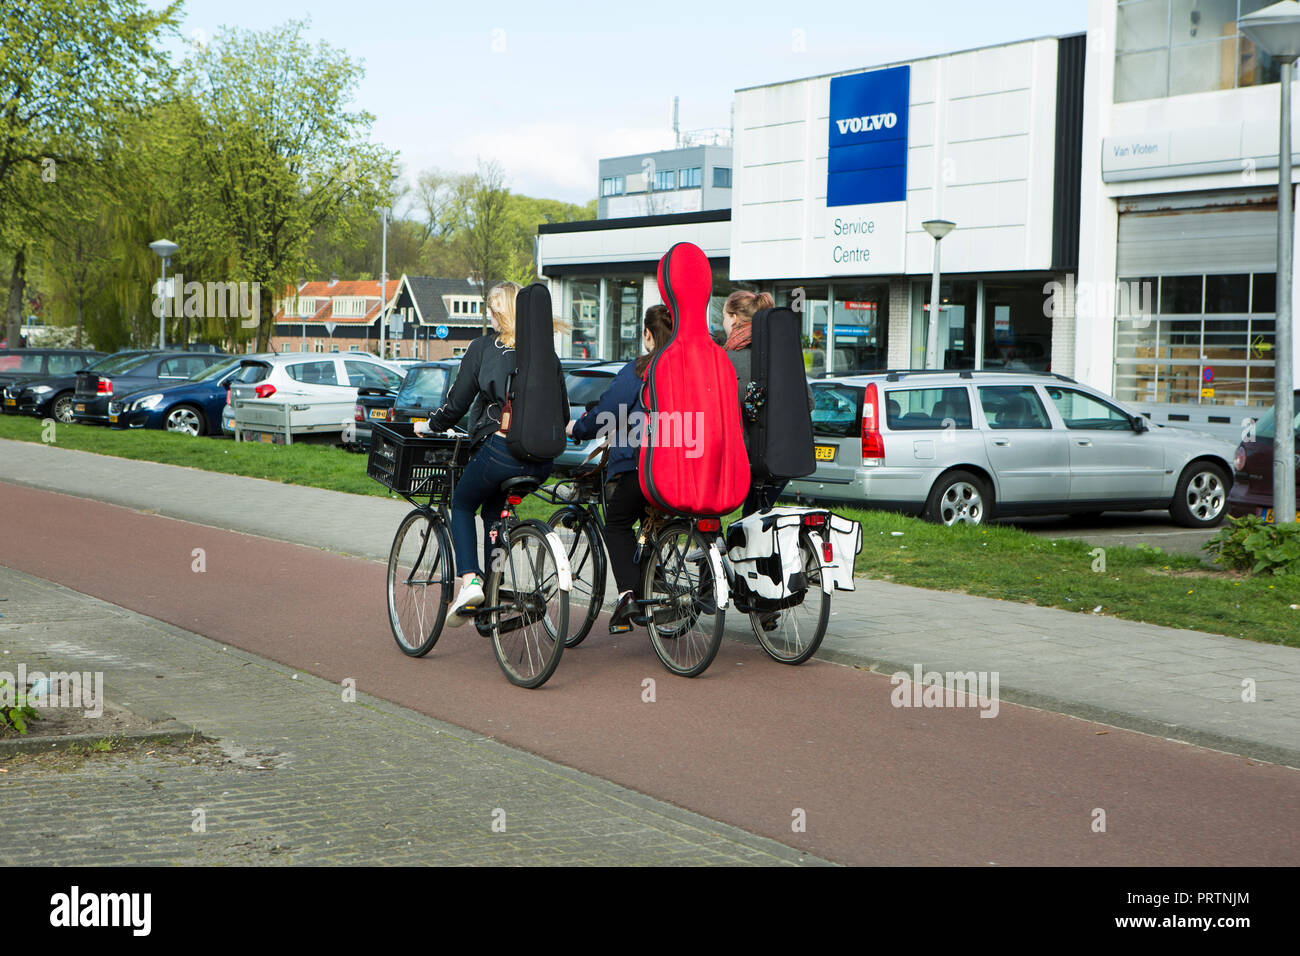 Three cyclists carrying violin and cello cases cycling past a Volvo dealership sign. Amsterdam. The Netherlands. - Stock Image